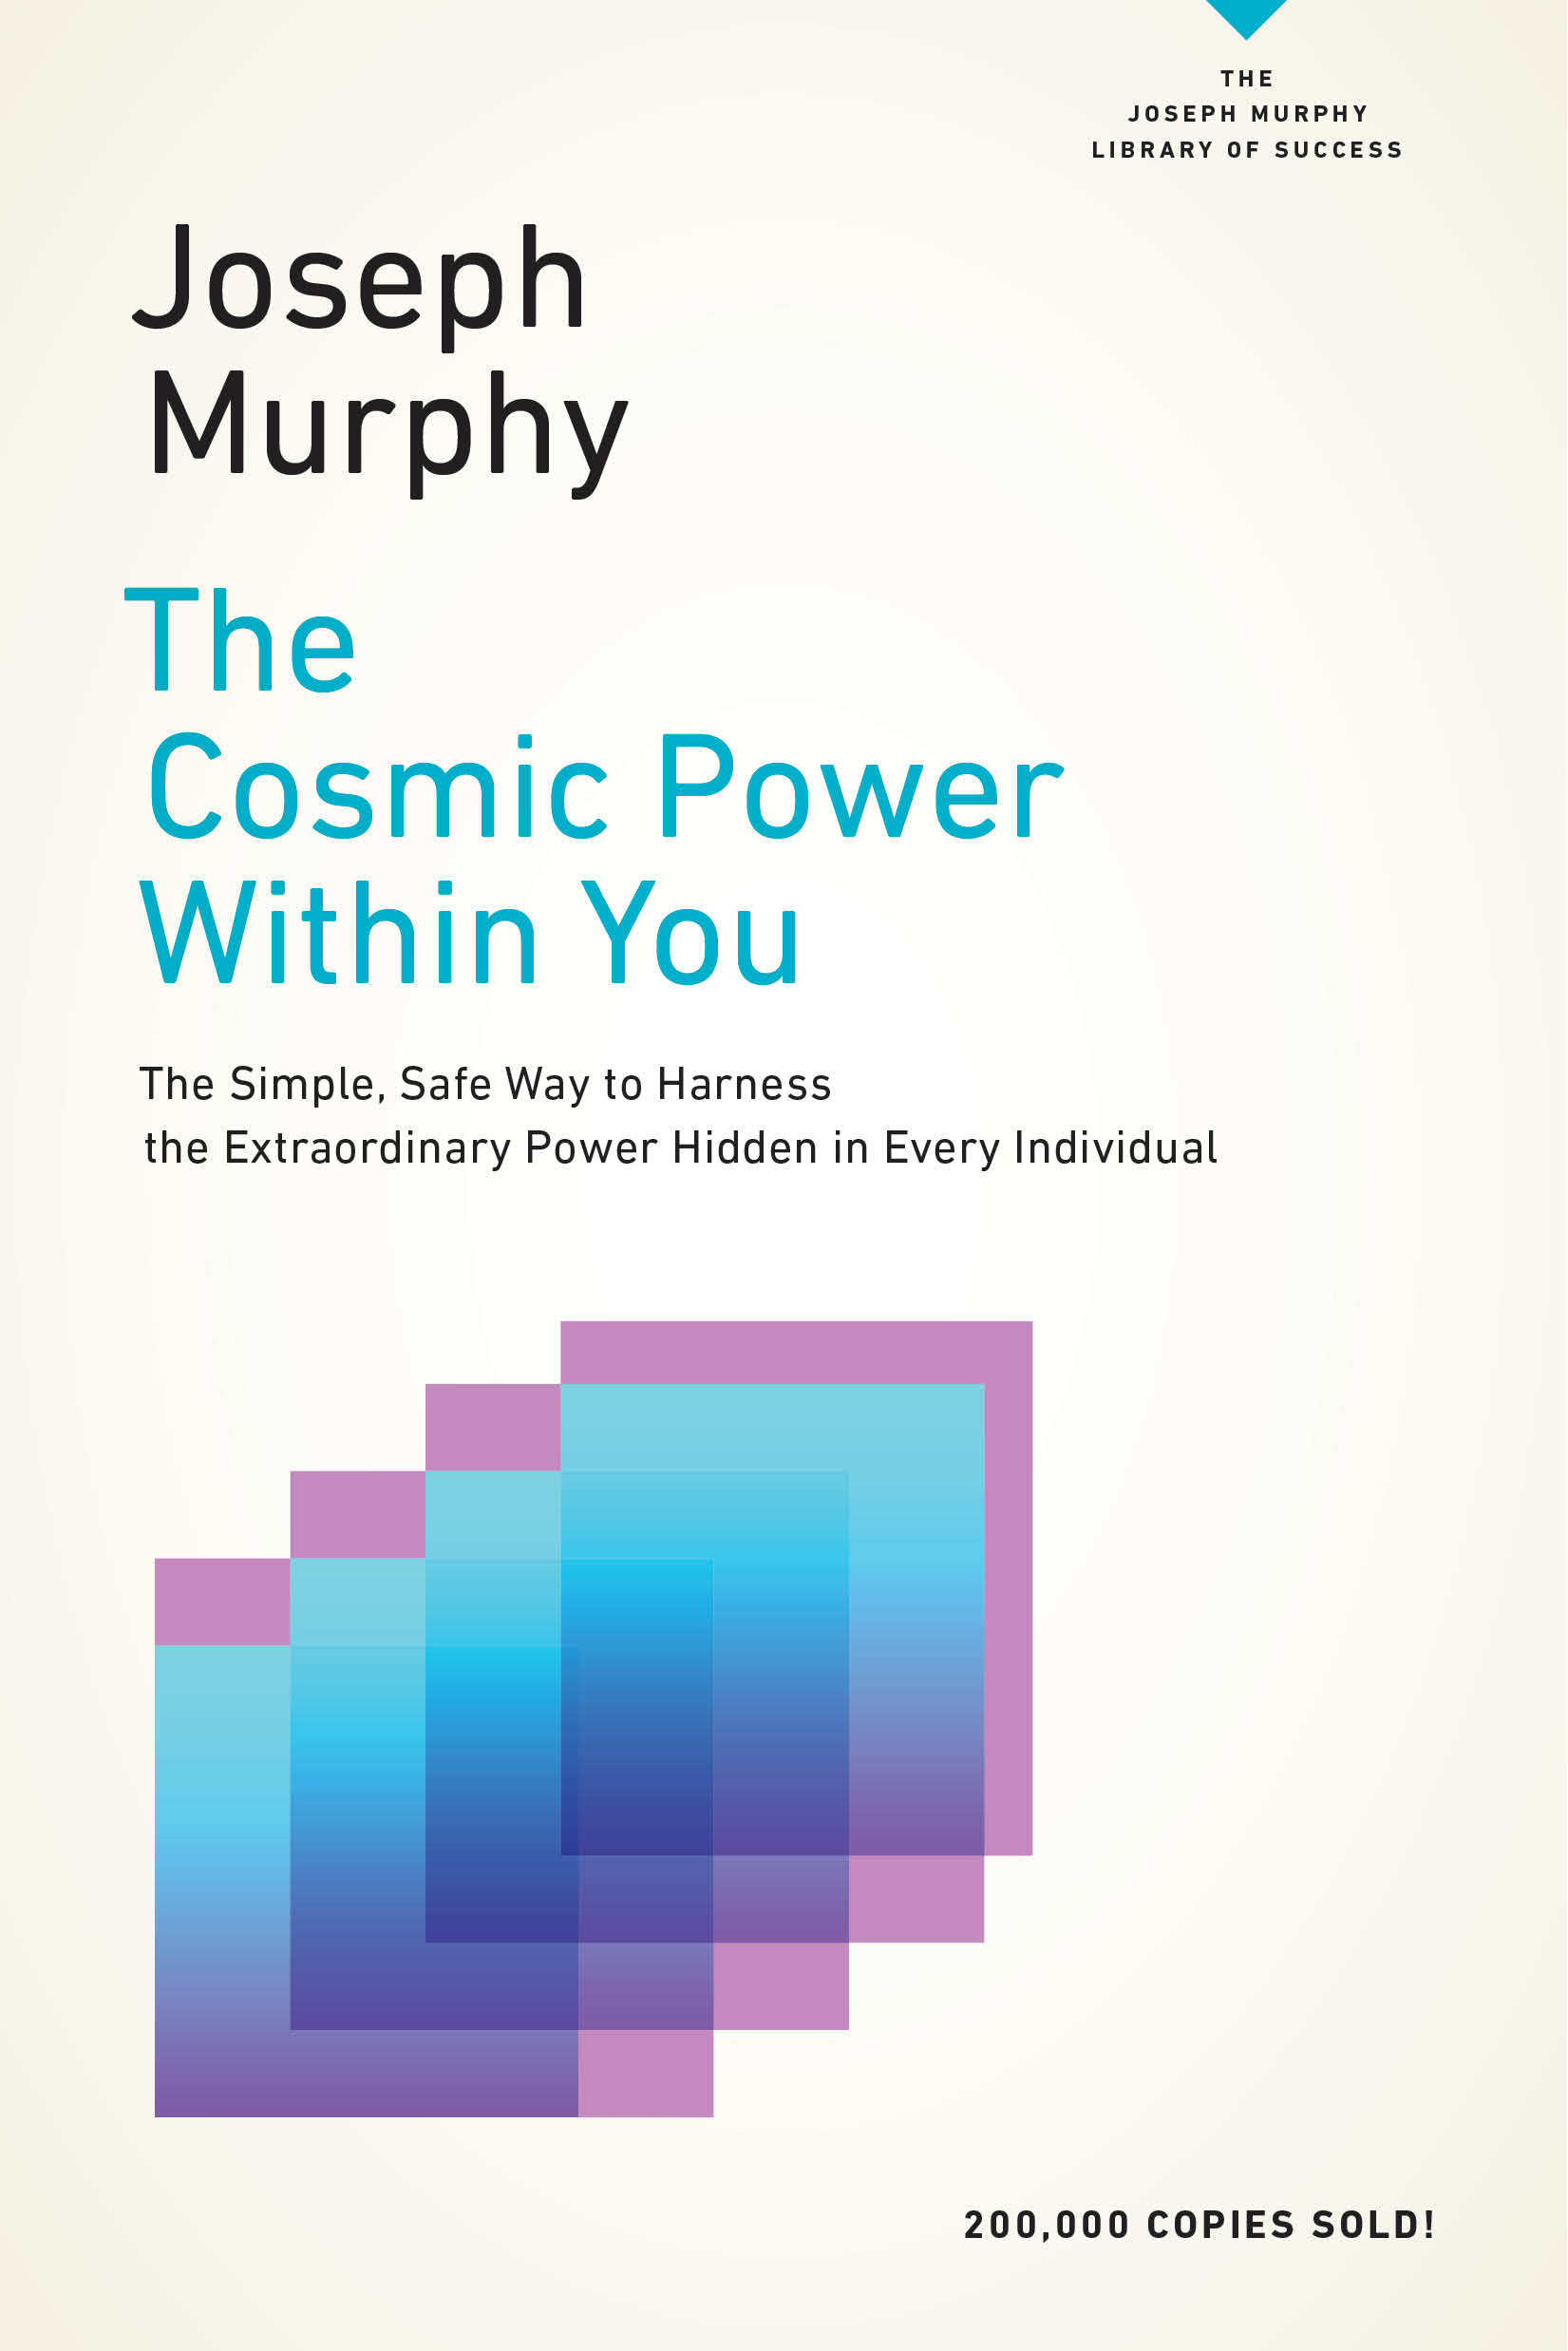 The Cosmic Power Within You The Simple, Safe Way to Harness the Extraordinary Power Hidden in Every Individual by Joseph Murphy